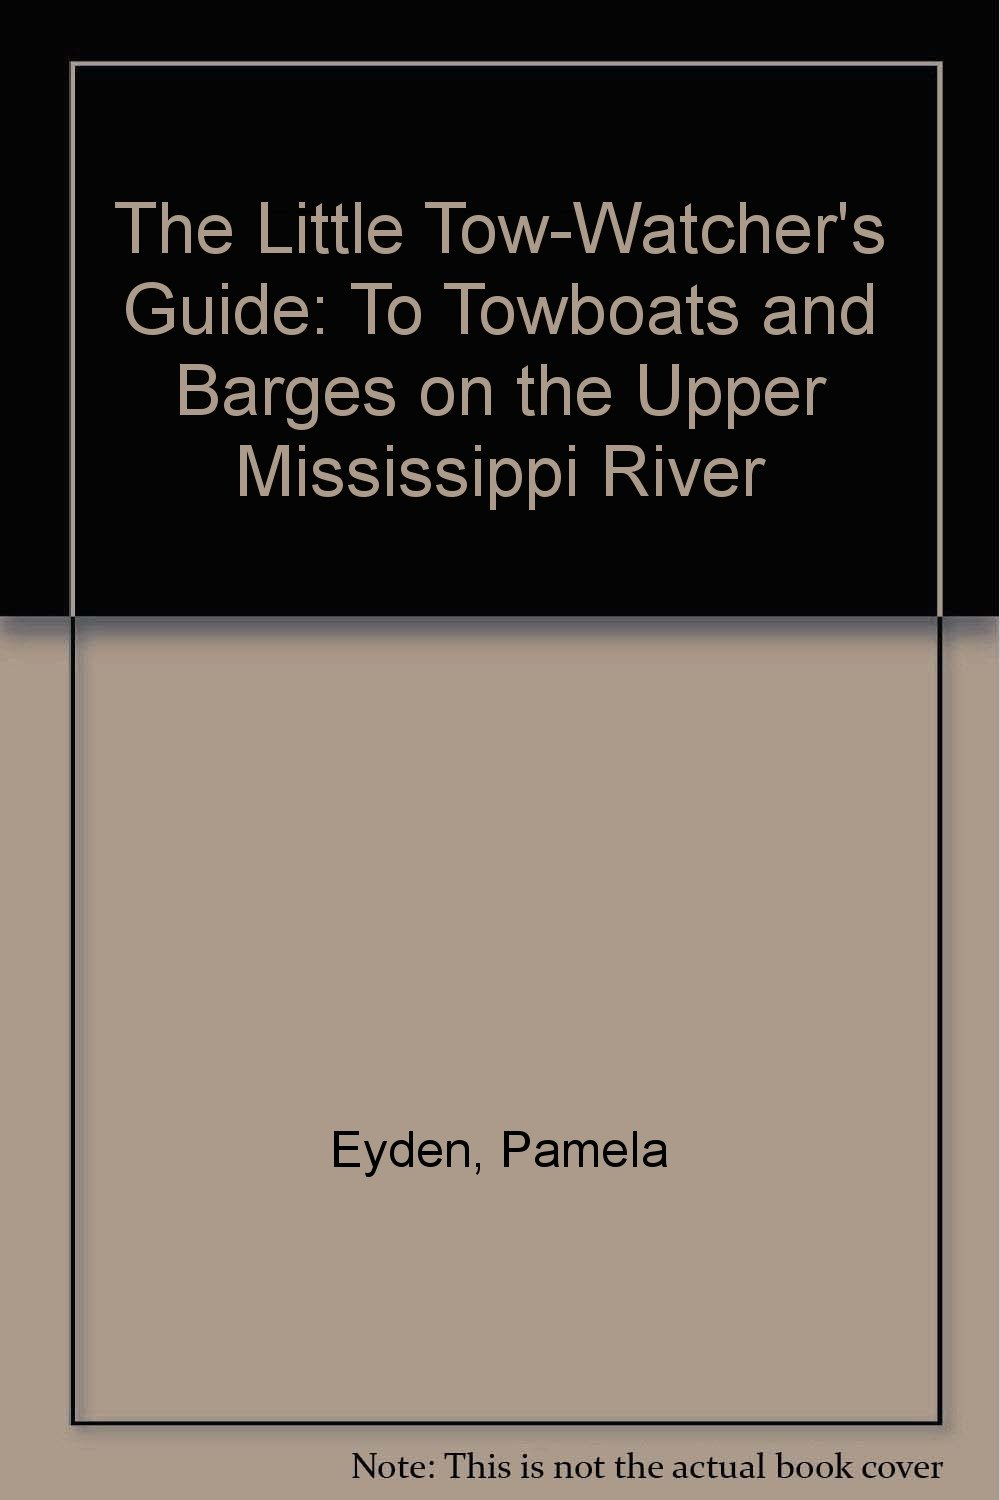 The Little Tow-Watcher's Guide: To Towboats and Barges on the Upper Mississippi River